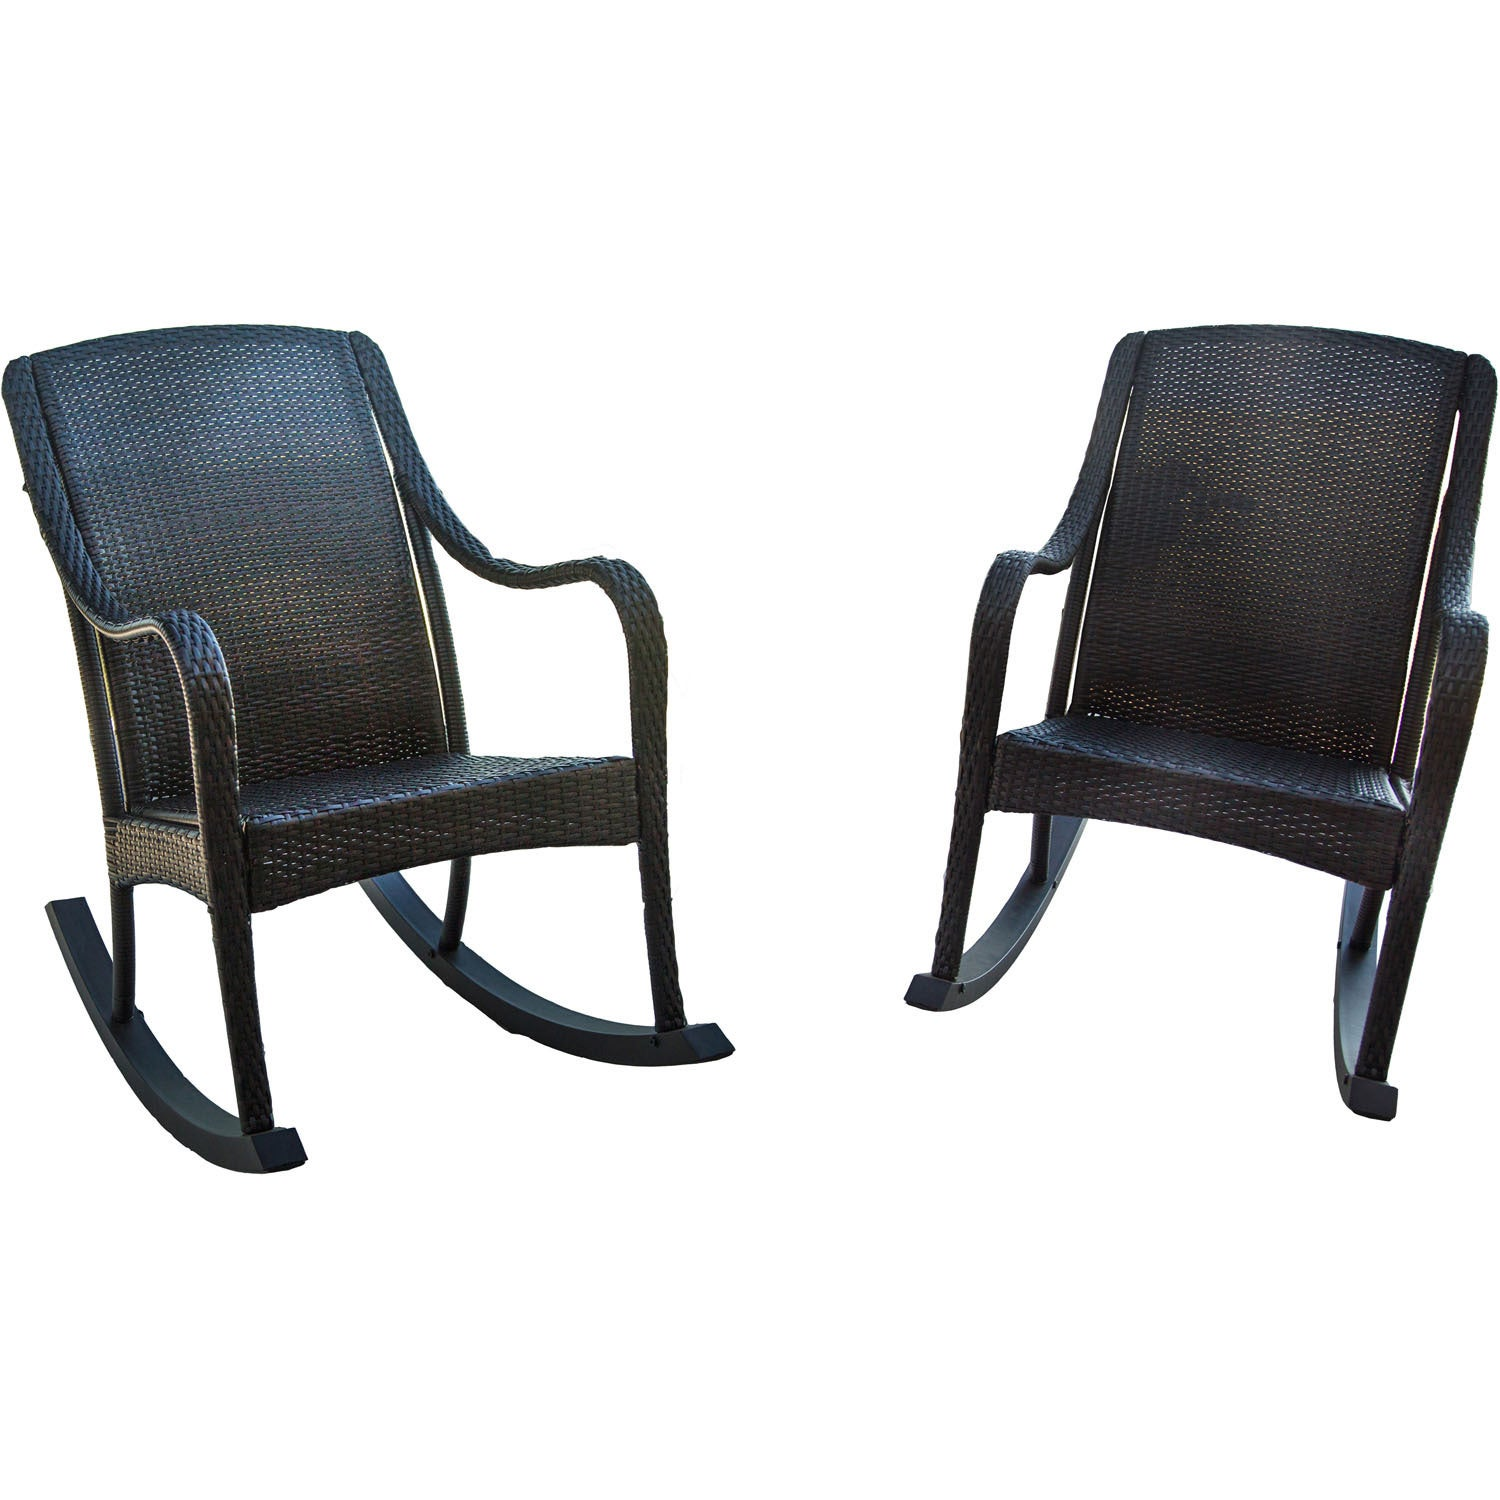 Hanover Outdoor Orleans Brown 2-piece Rocking Chair Set (...